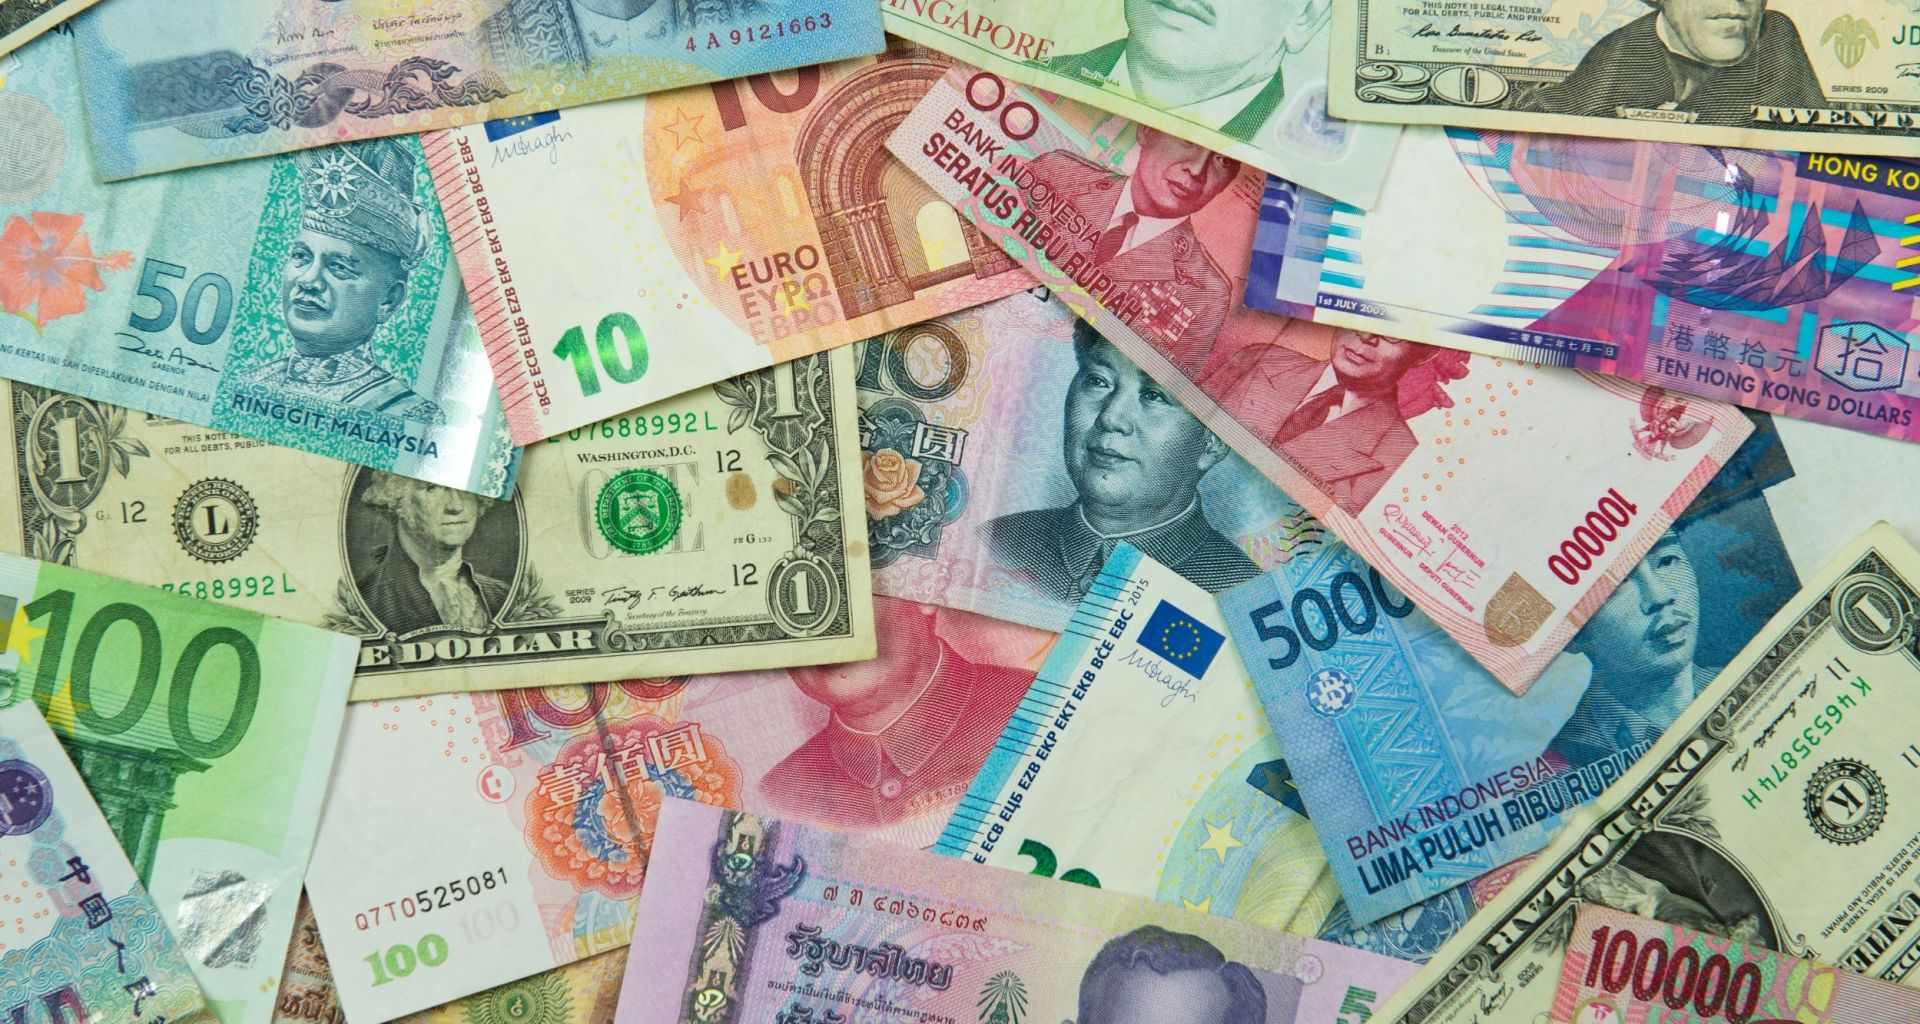 Tips for exchanging foreign currency when traveling abroad.